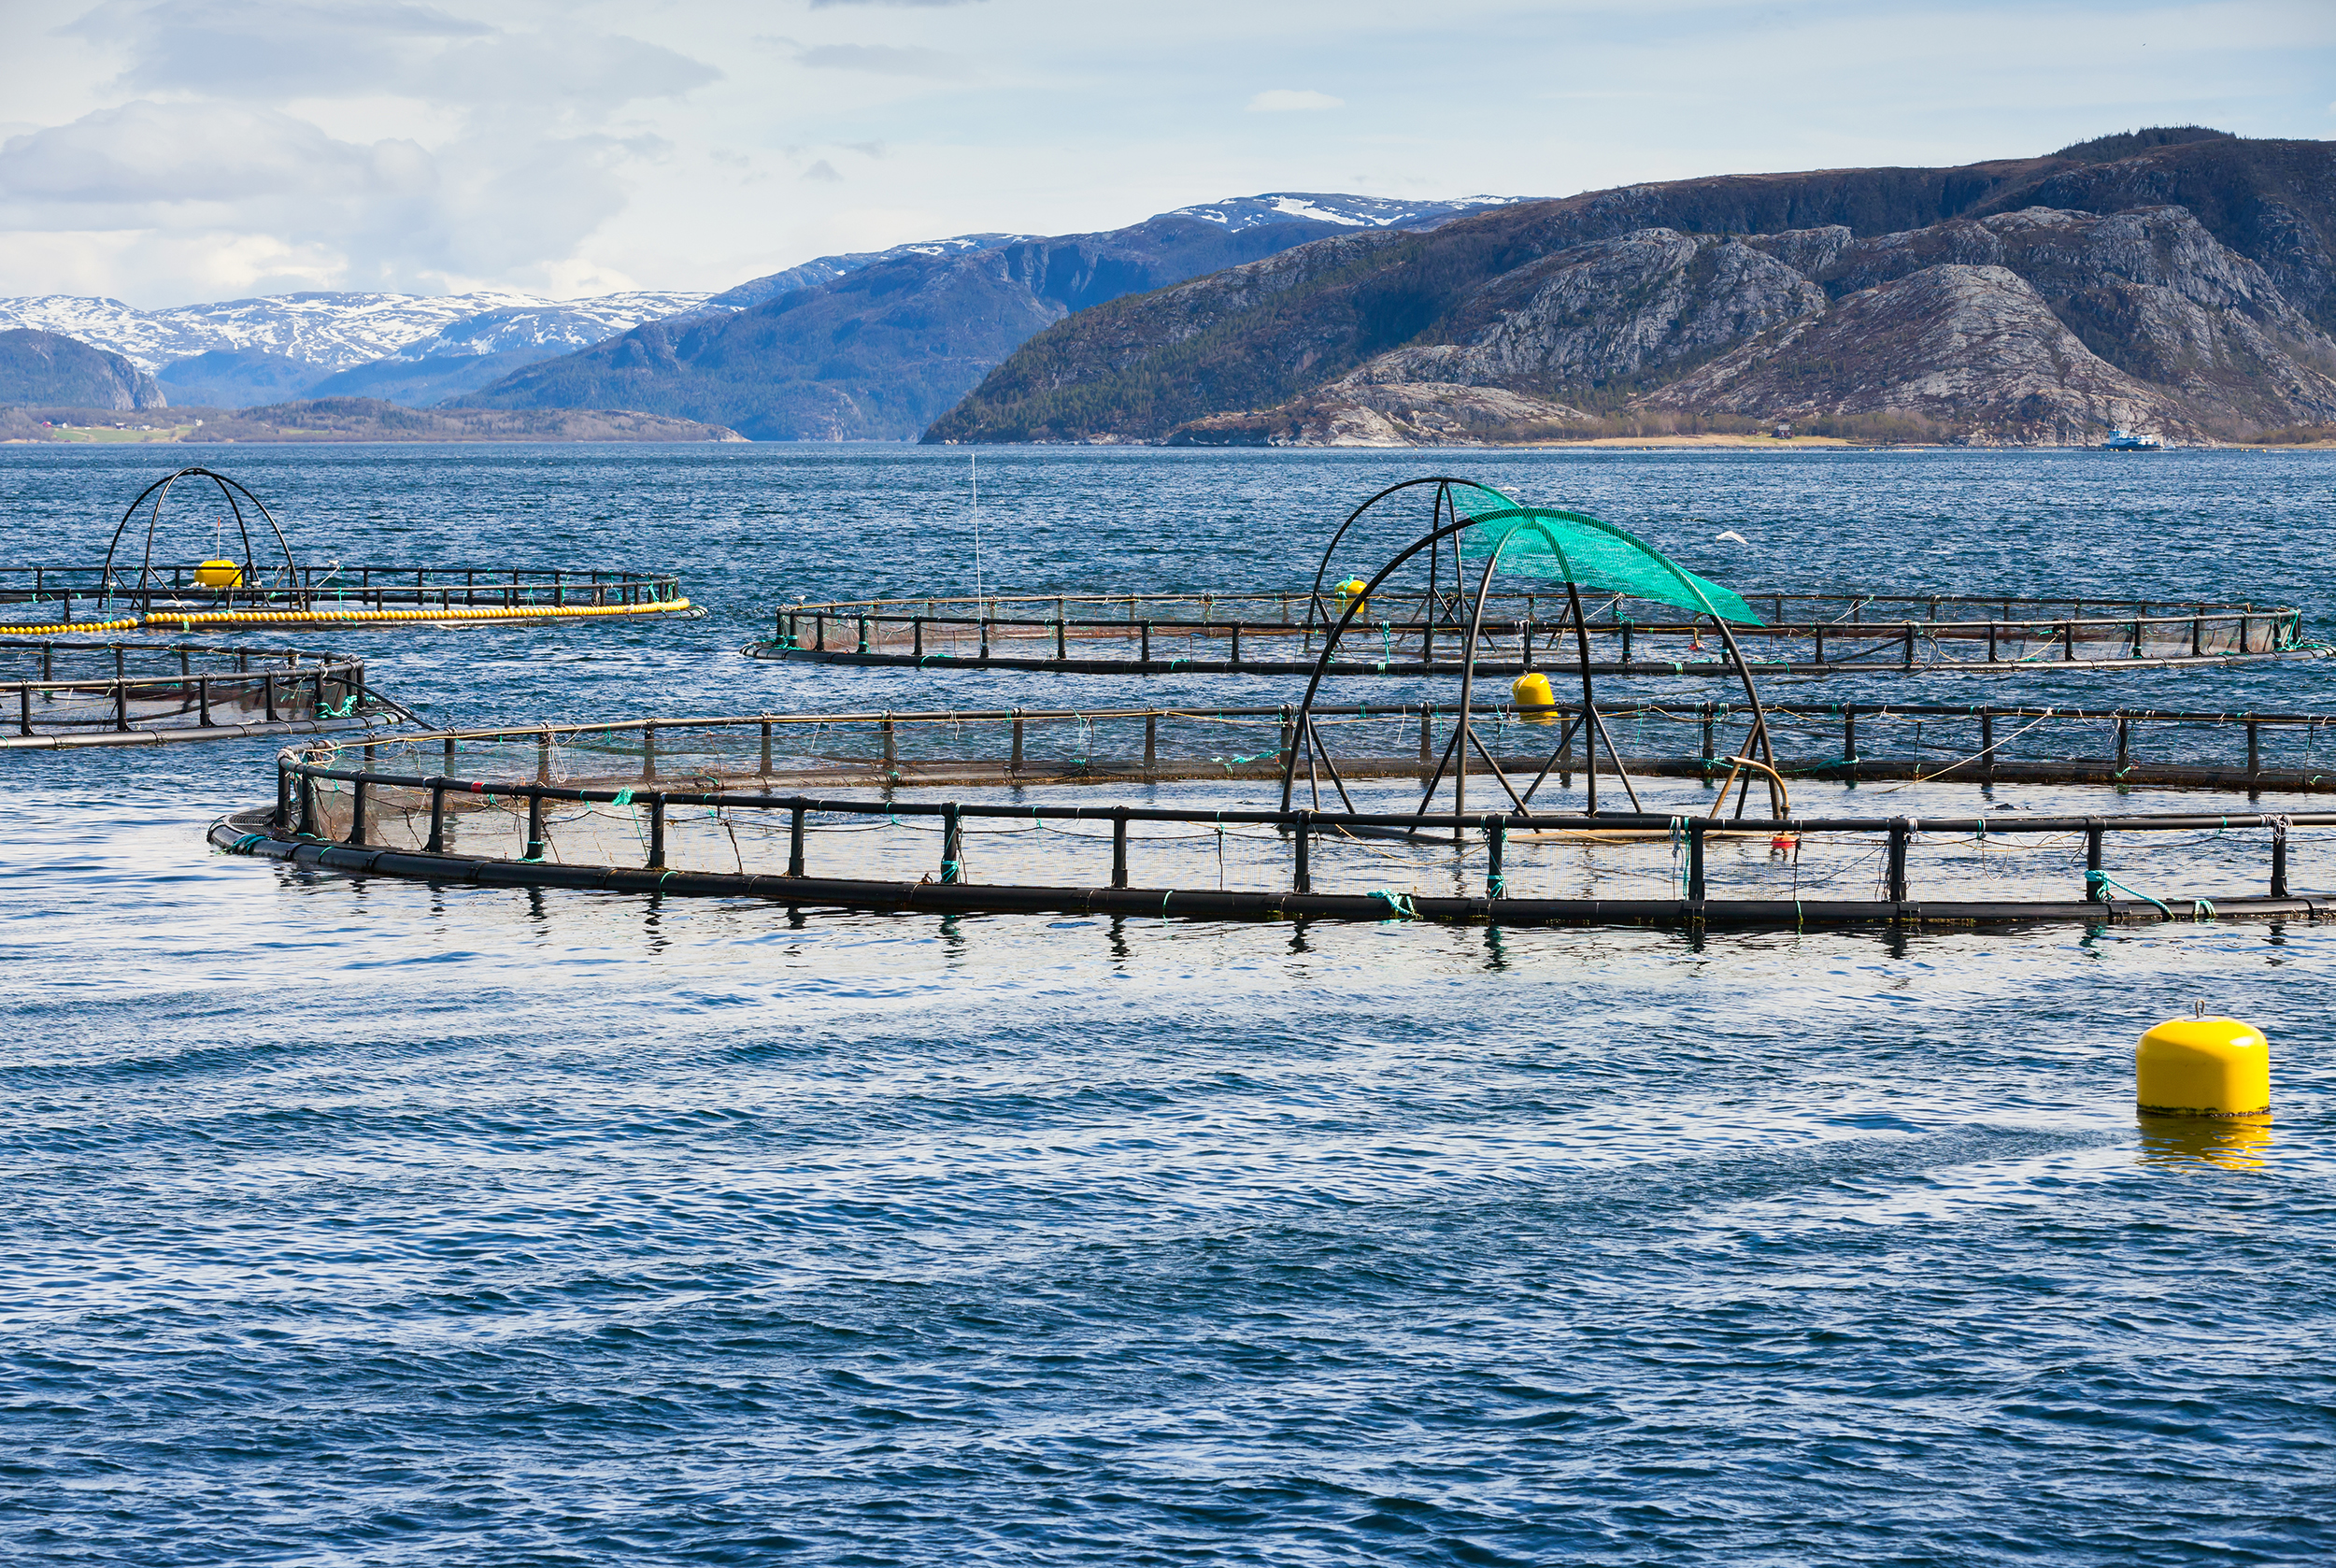 Norwegian-fish-farm-for-salmon-growing-in-fjord-184700446_4500x3020_low.jpg